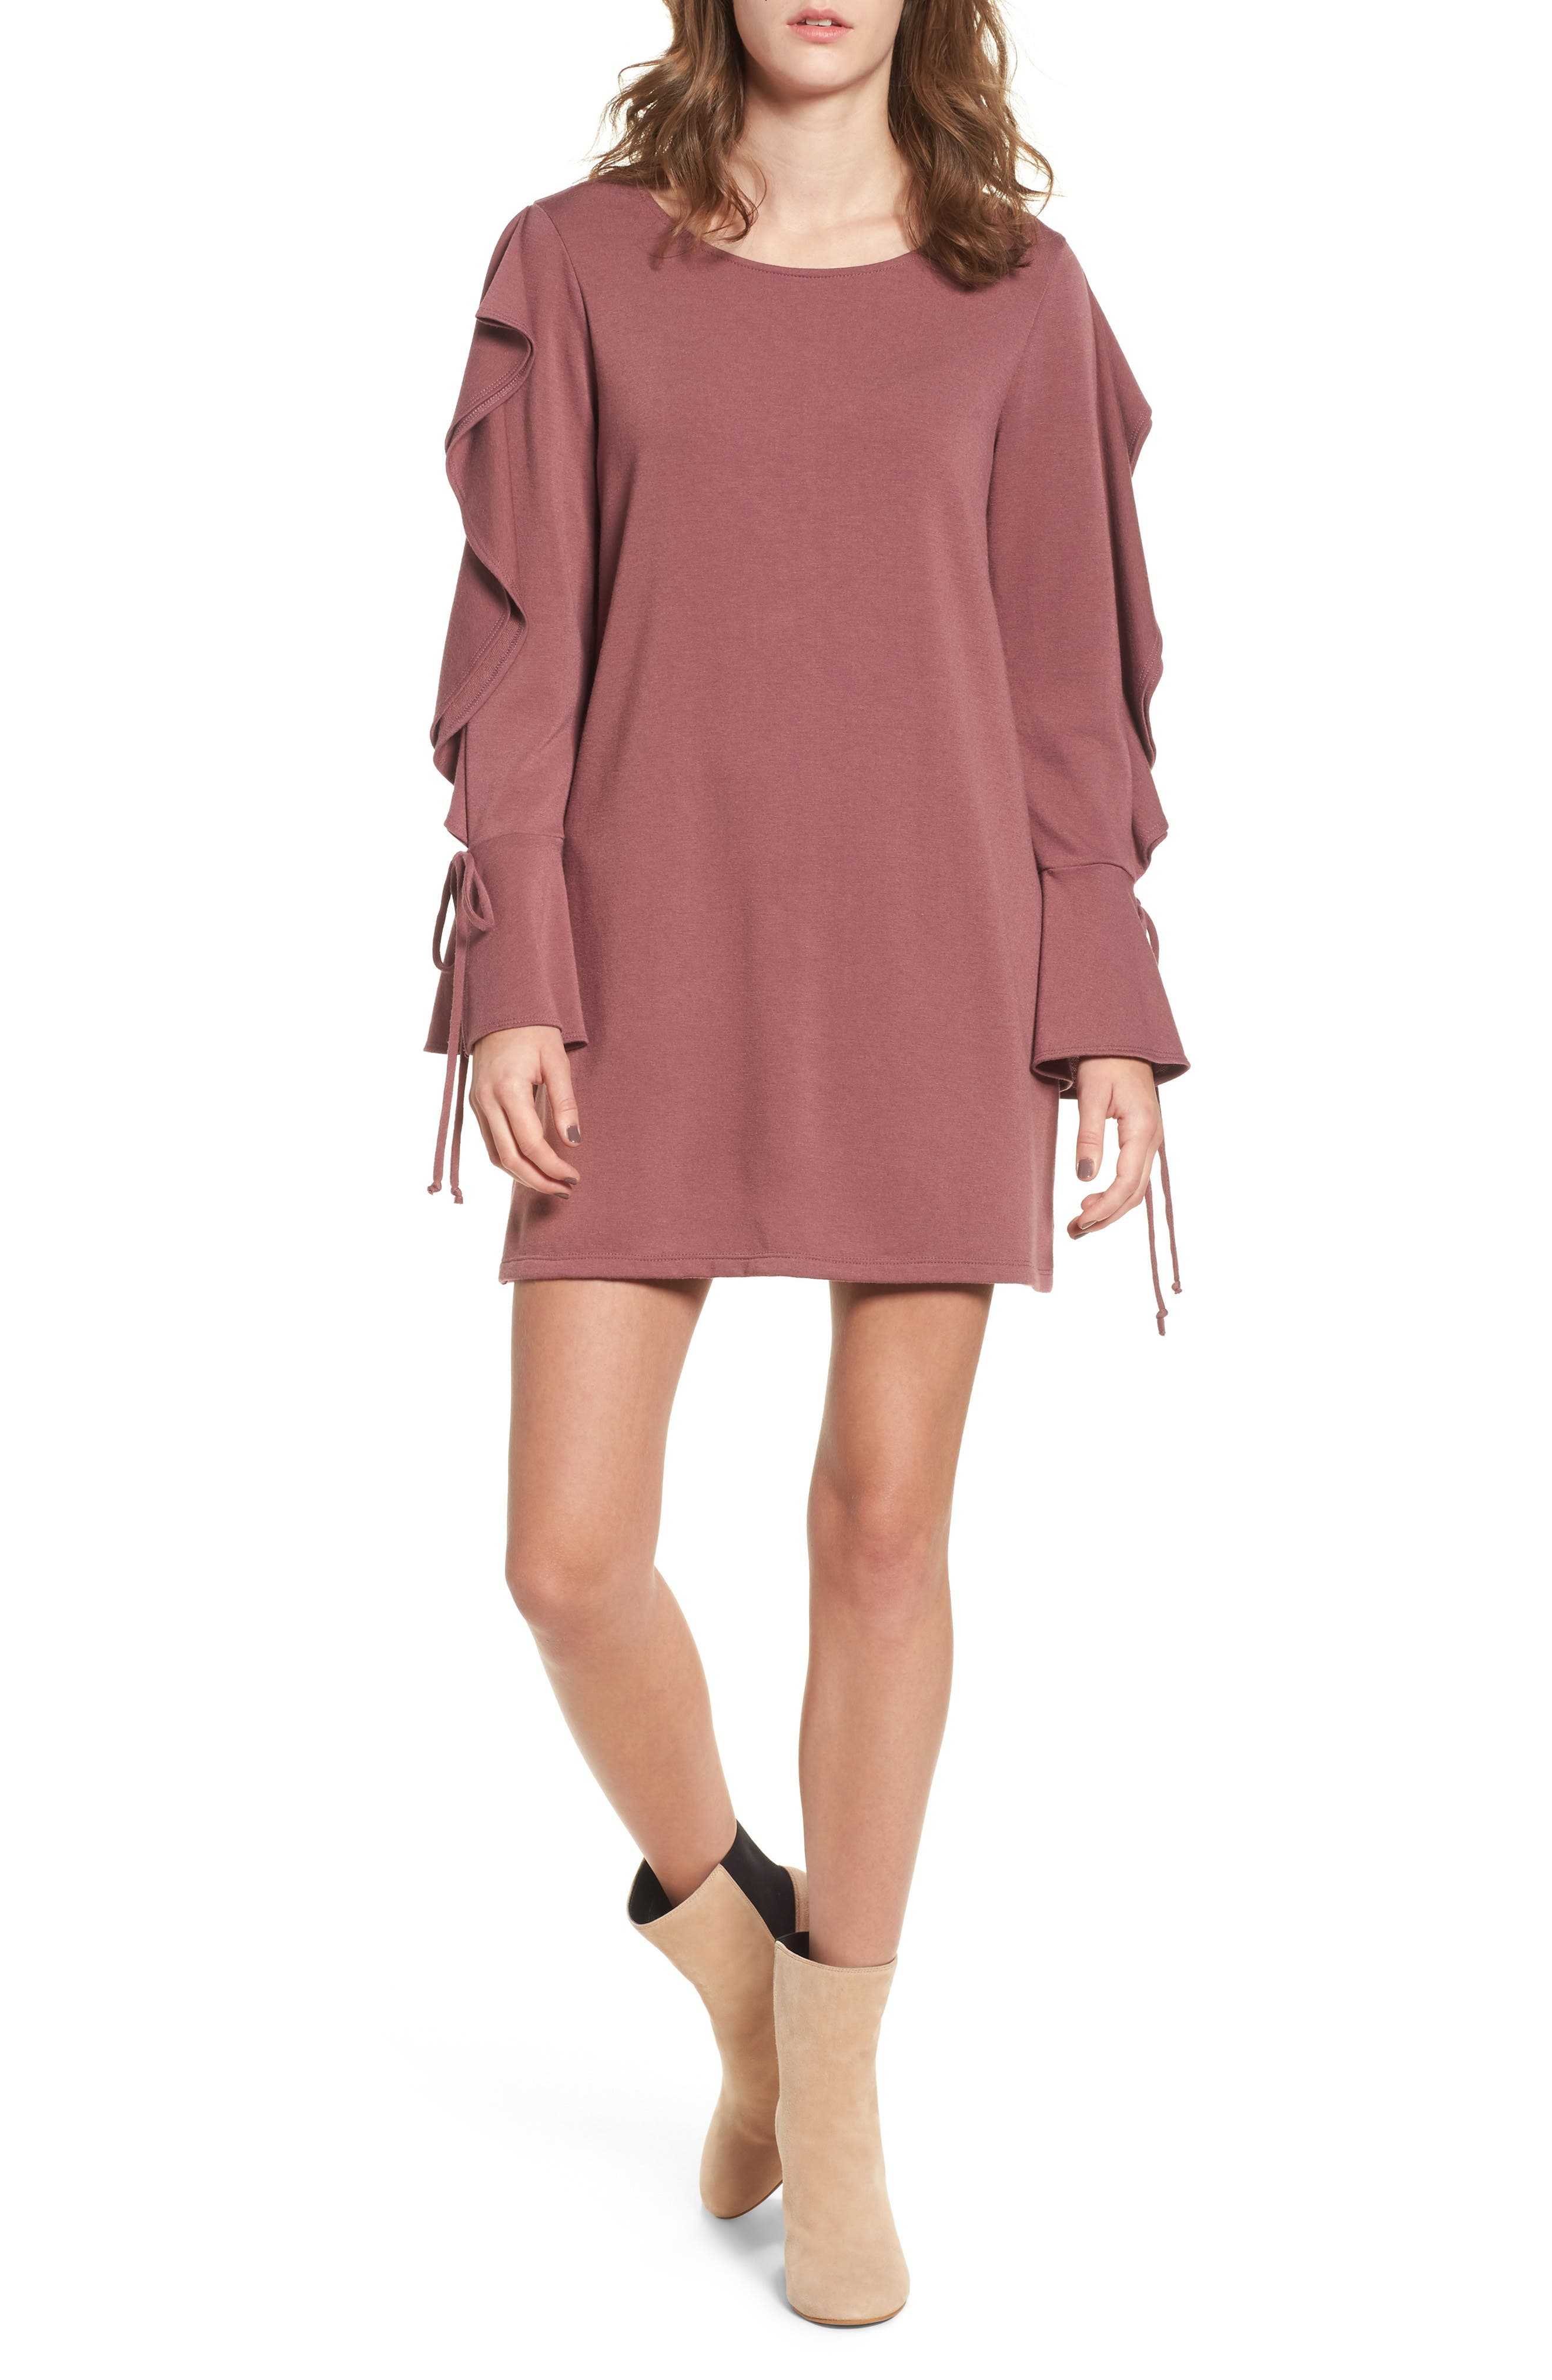 Everly Ruffle Sleeve Sweatshirt Dress